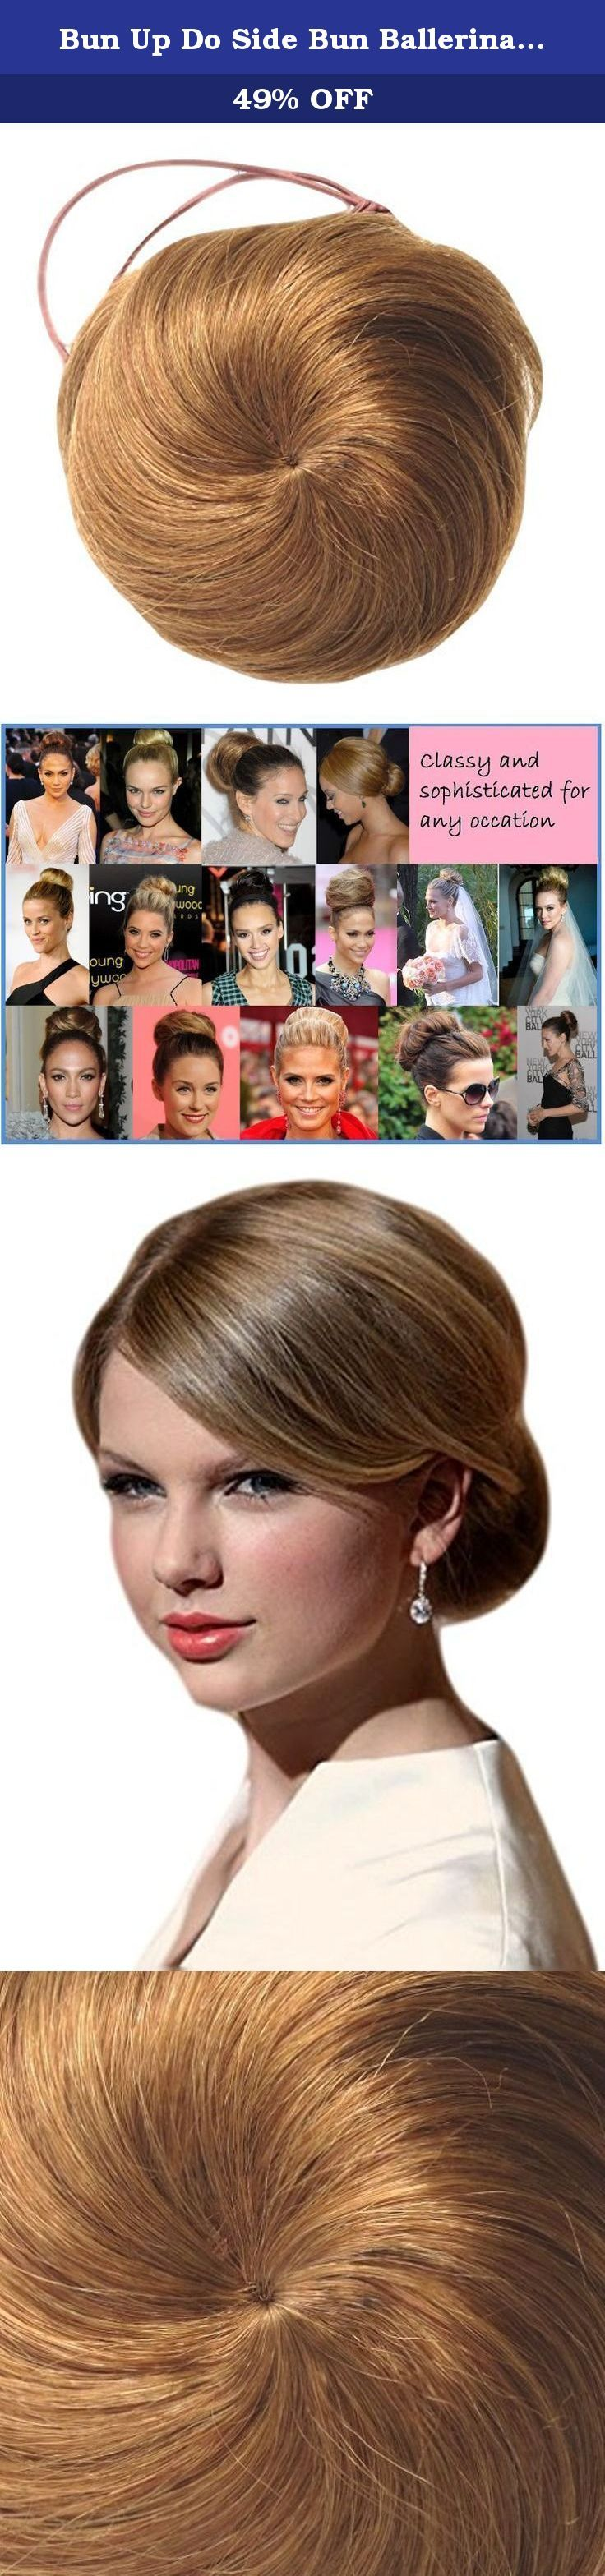 Bun Up Do Side Bun Ballerina Tight Or Even Top Knot In Wonderful Strawberry C Synthetic. This appealing little messy bun can be styled in the classic Ballerina look . Or why not try the celbrity side bun look This type of faux bun is low maintenance and can be styled differently depending on the desired result. The bun can be styled to obtain an elegant and classic updo, appropriate for formal events or it can be styled to obtain a more casual side or back bun, hairstyle. Even on quite…